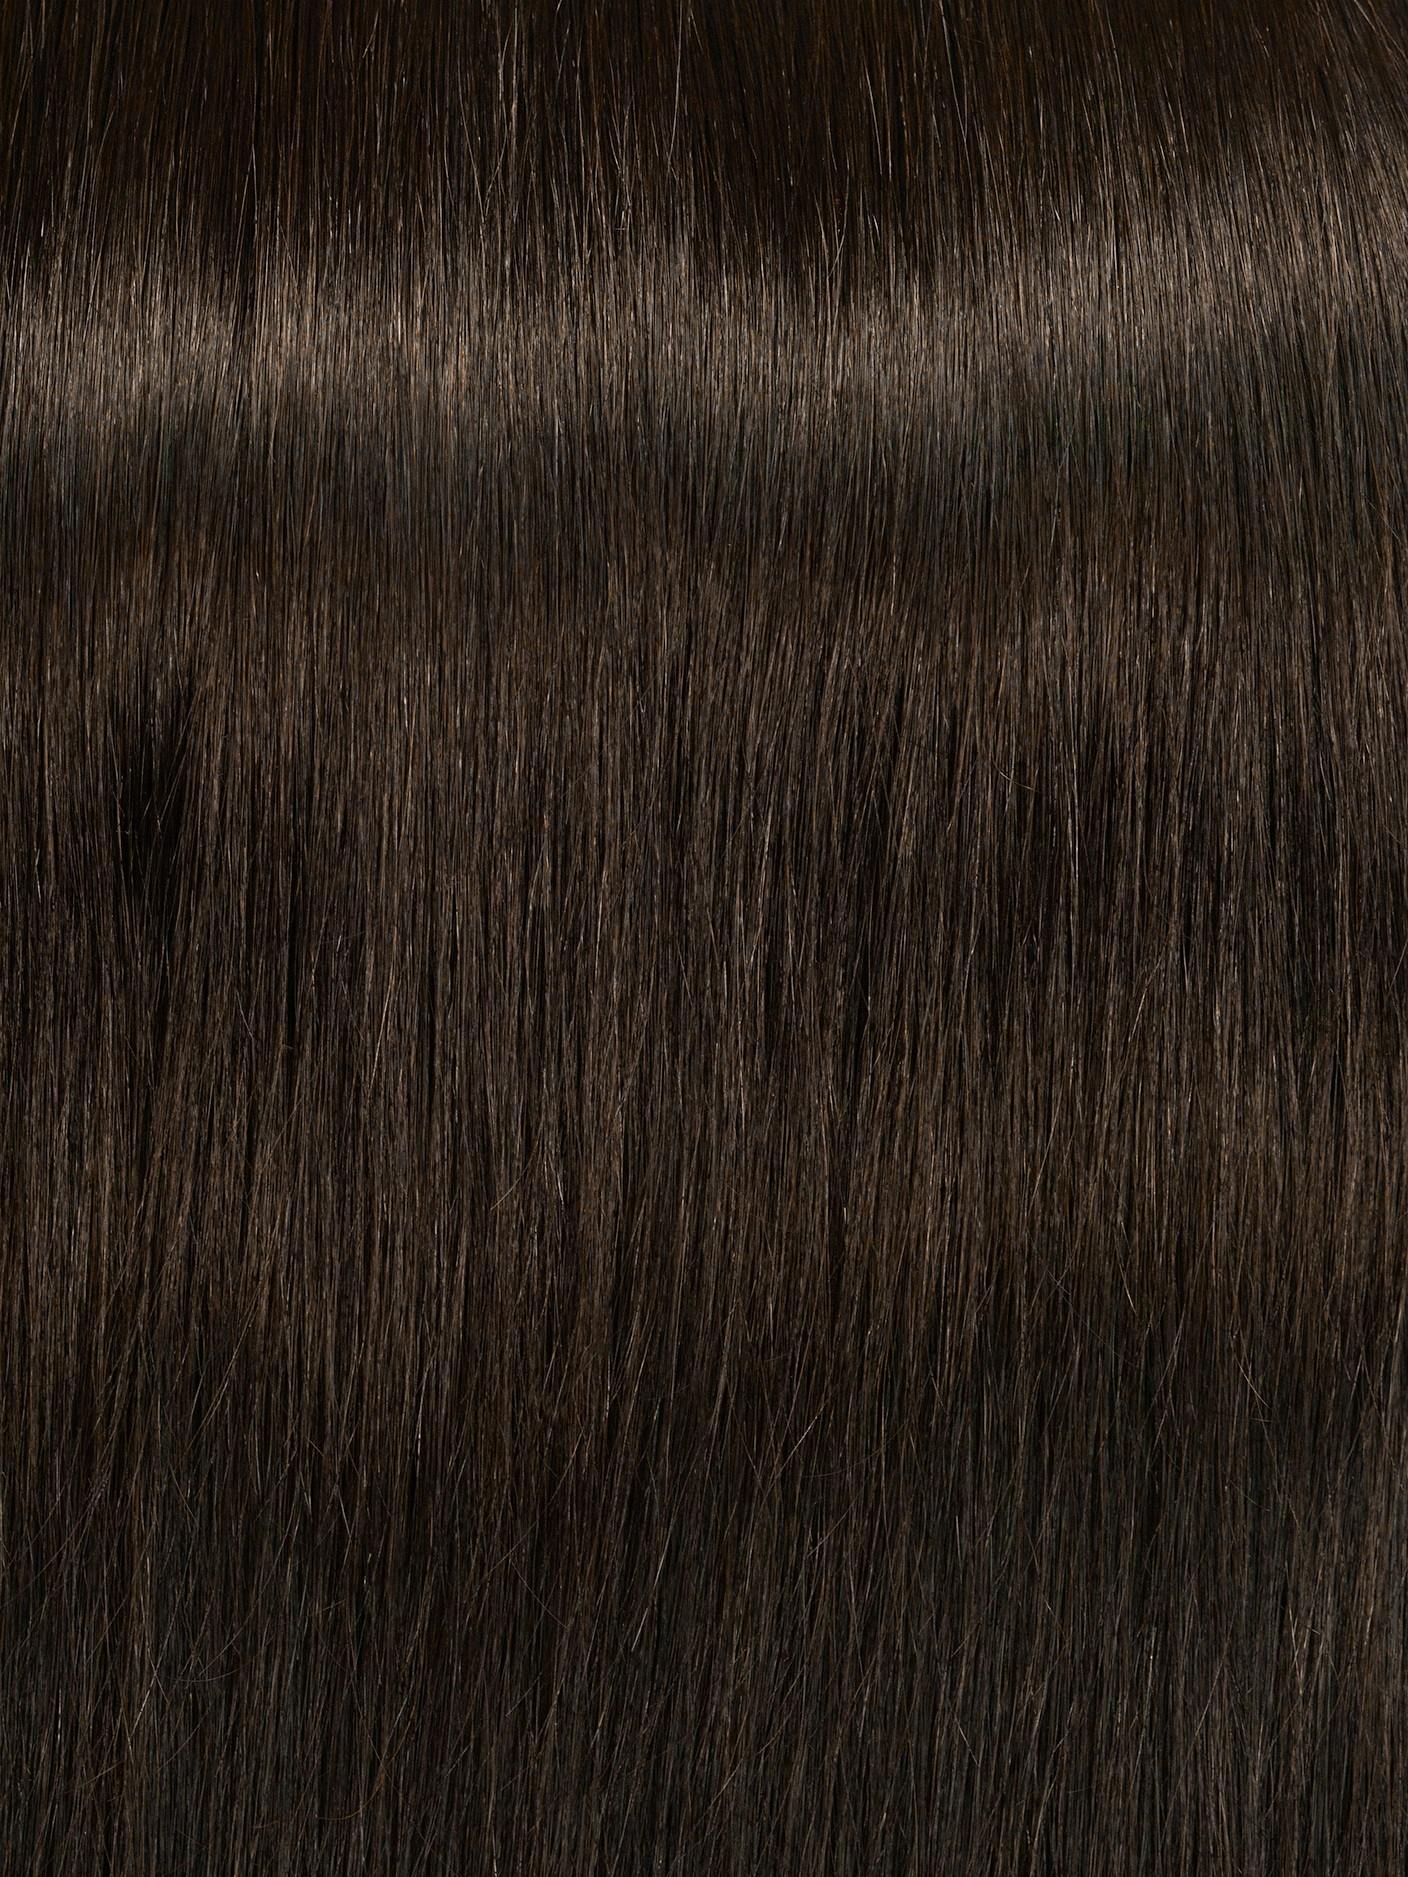 NATURAL BLACK #1B - Not all black hair is built the same. When your natural shade is lighter than Jet Black, the warm brown highlights loaded in our most popular set make for an effortless blend fit for even the busiest lifestyles.